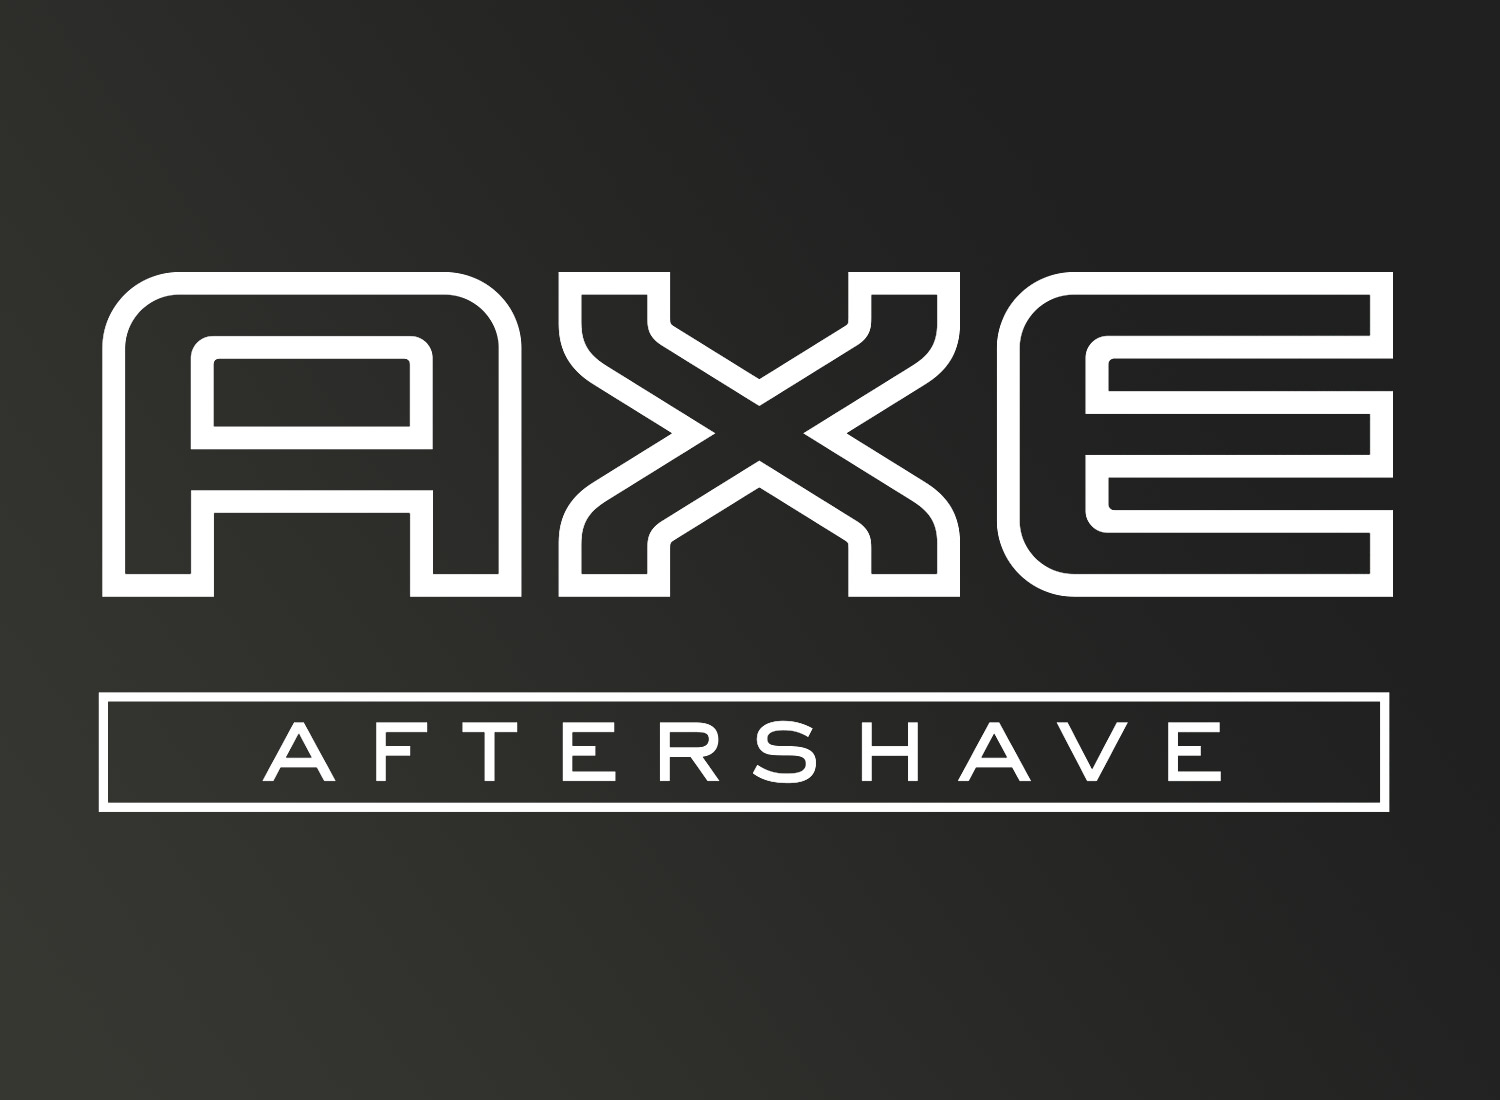 Neues Packaging Design für AXE Aftershave